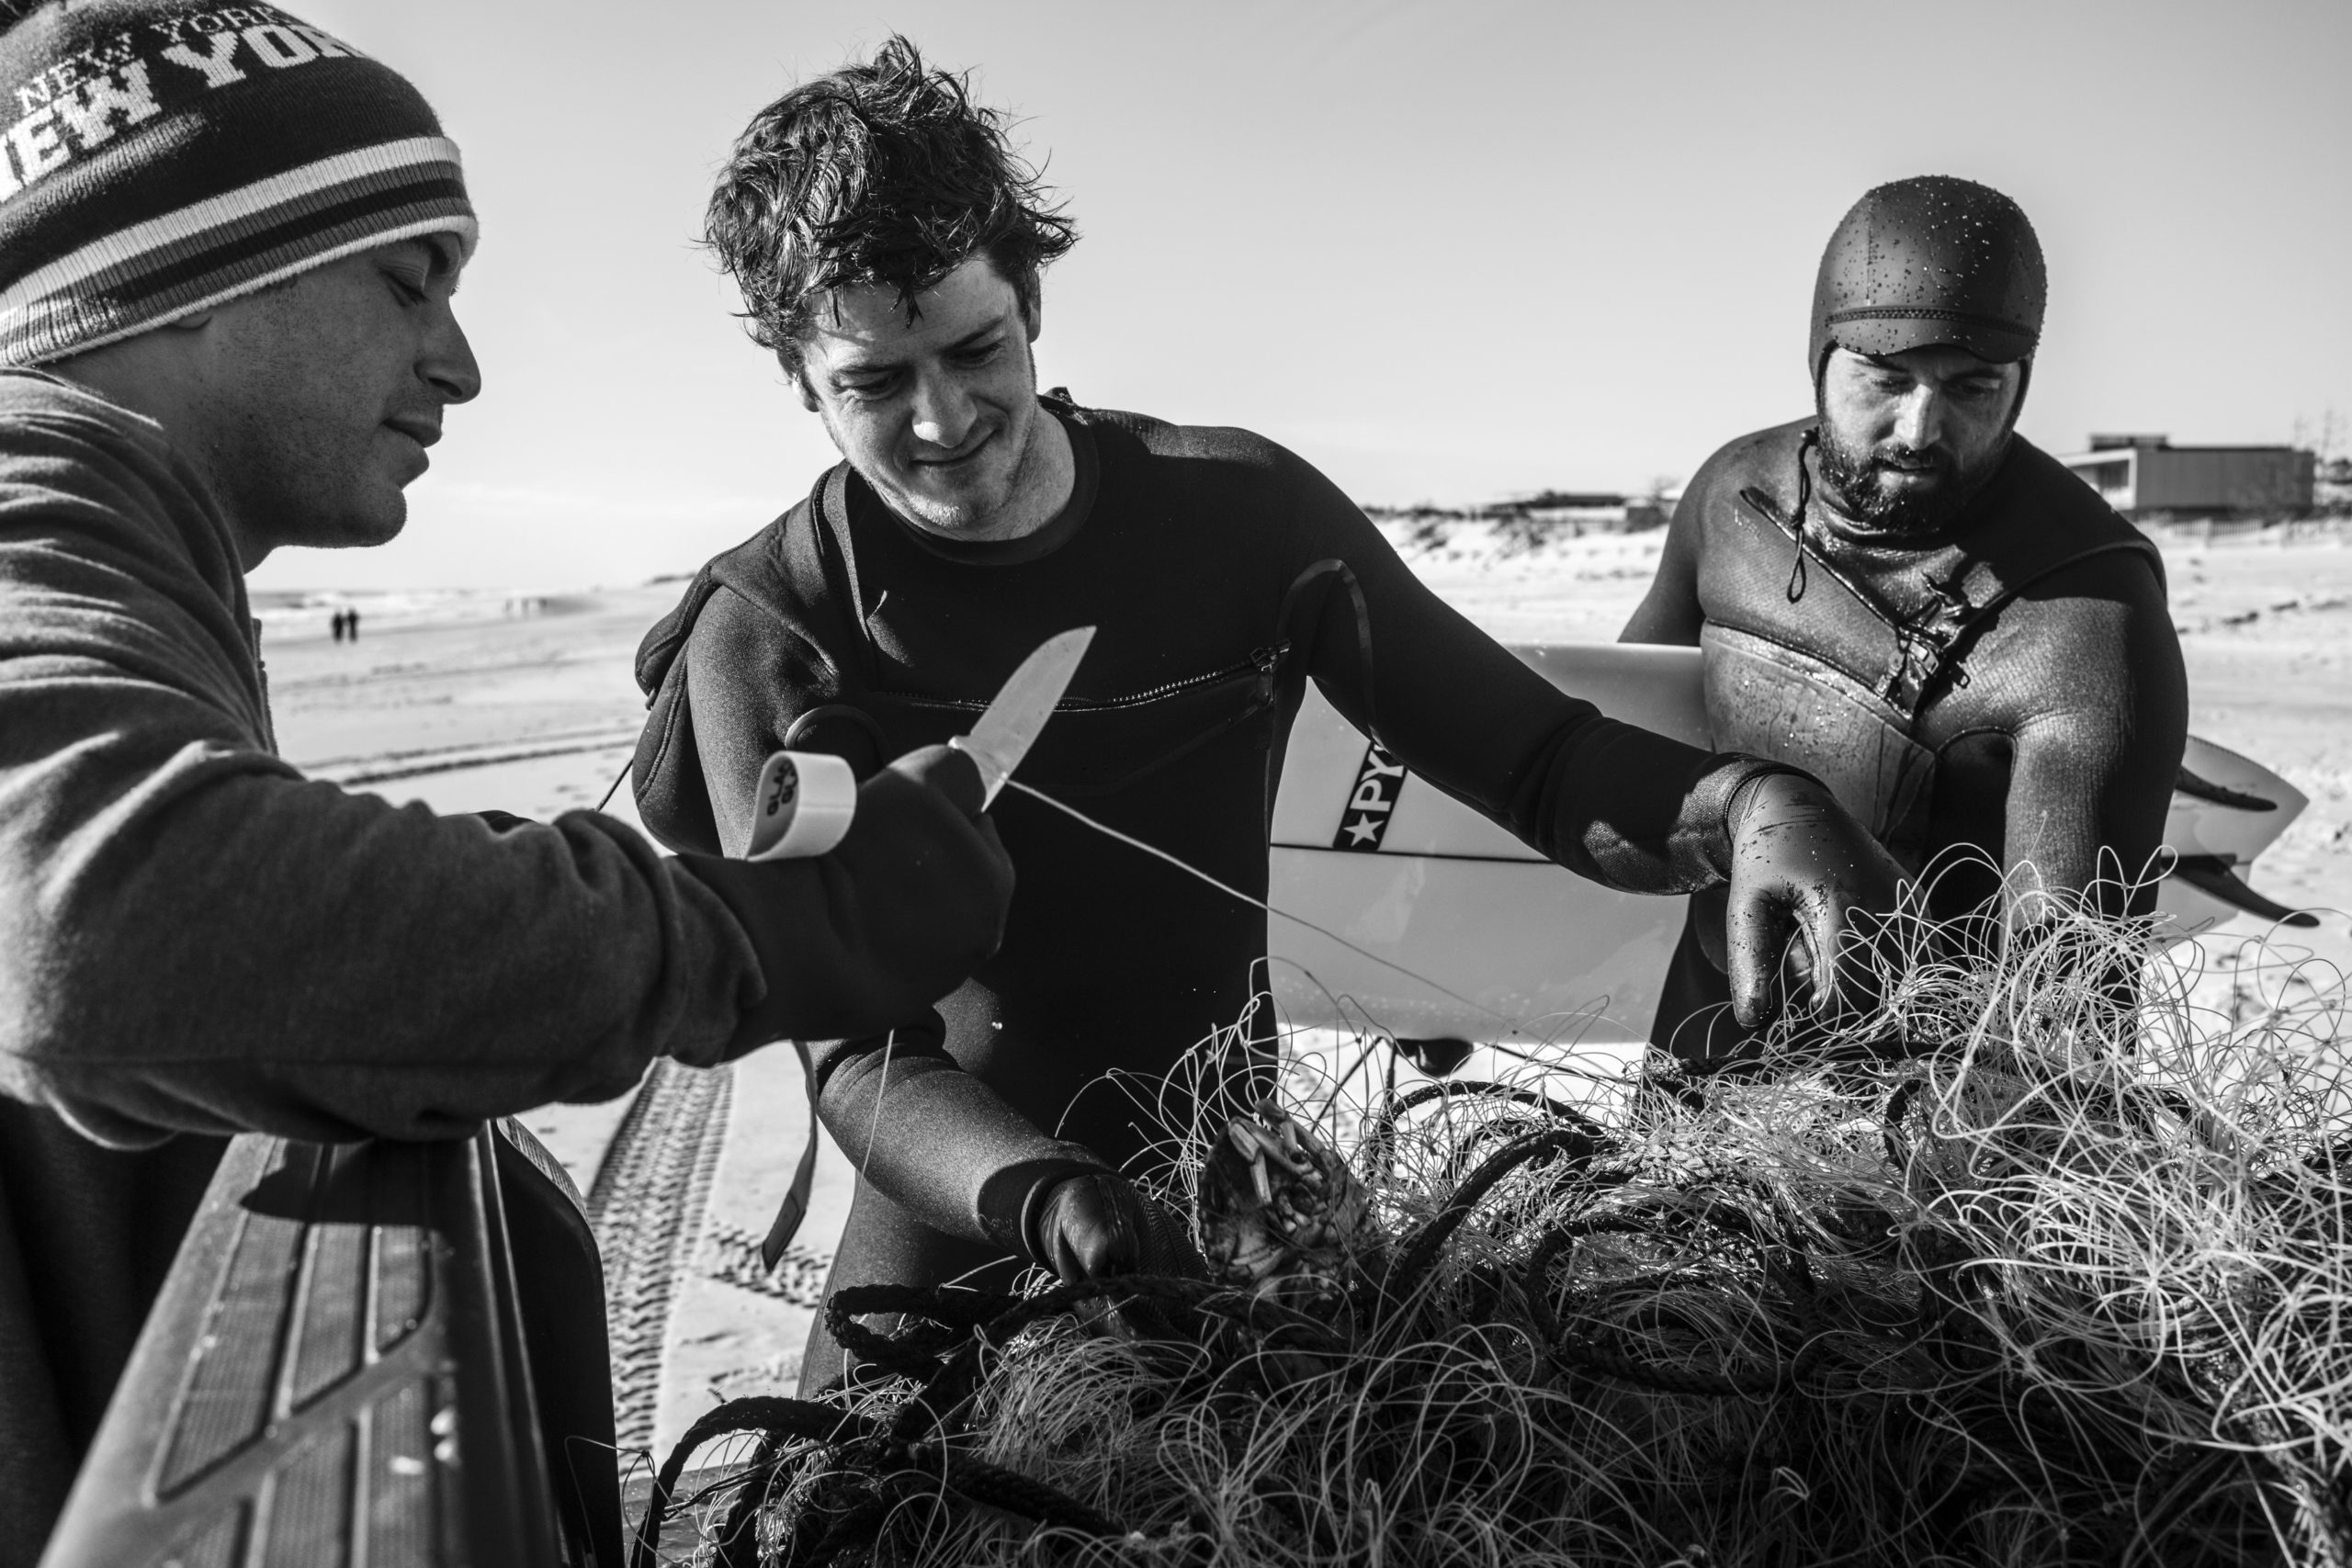 Local surfers, Brian Pollak, Will O'Connor, and Marley Doherty, untangle Peekytoe Crabs from an old fishing line that washed up on shore in Southampton on Sunday, December 27.     LORI HAWKINS